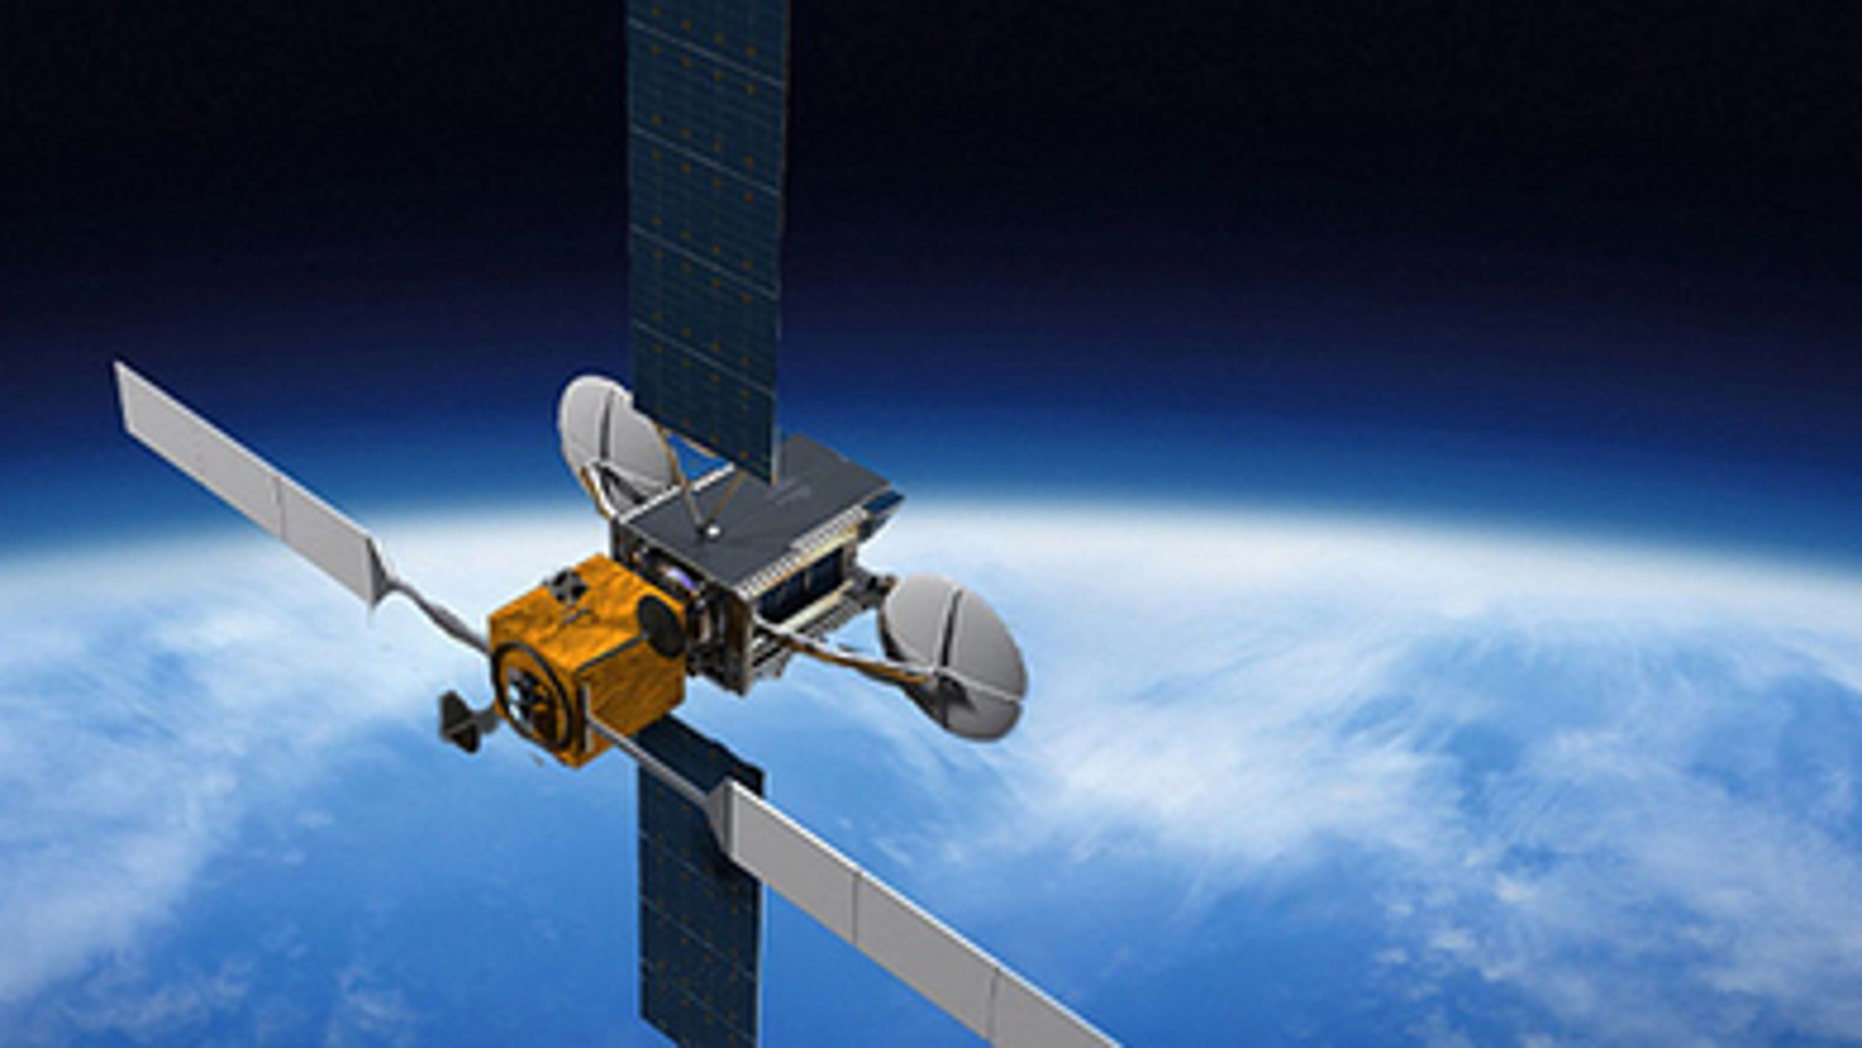 ViviSat's Mission Extension Vehicle (MEV) will help satellite operators extend the lives of satellites in their fleet.